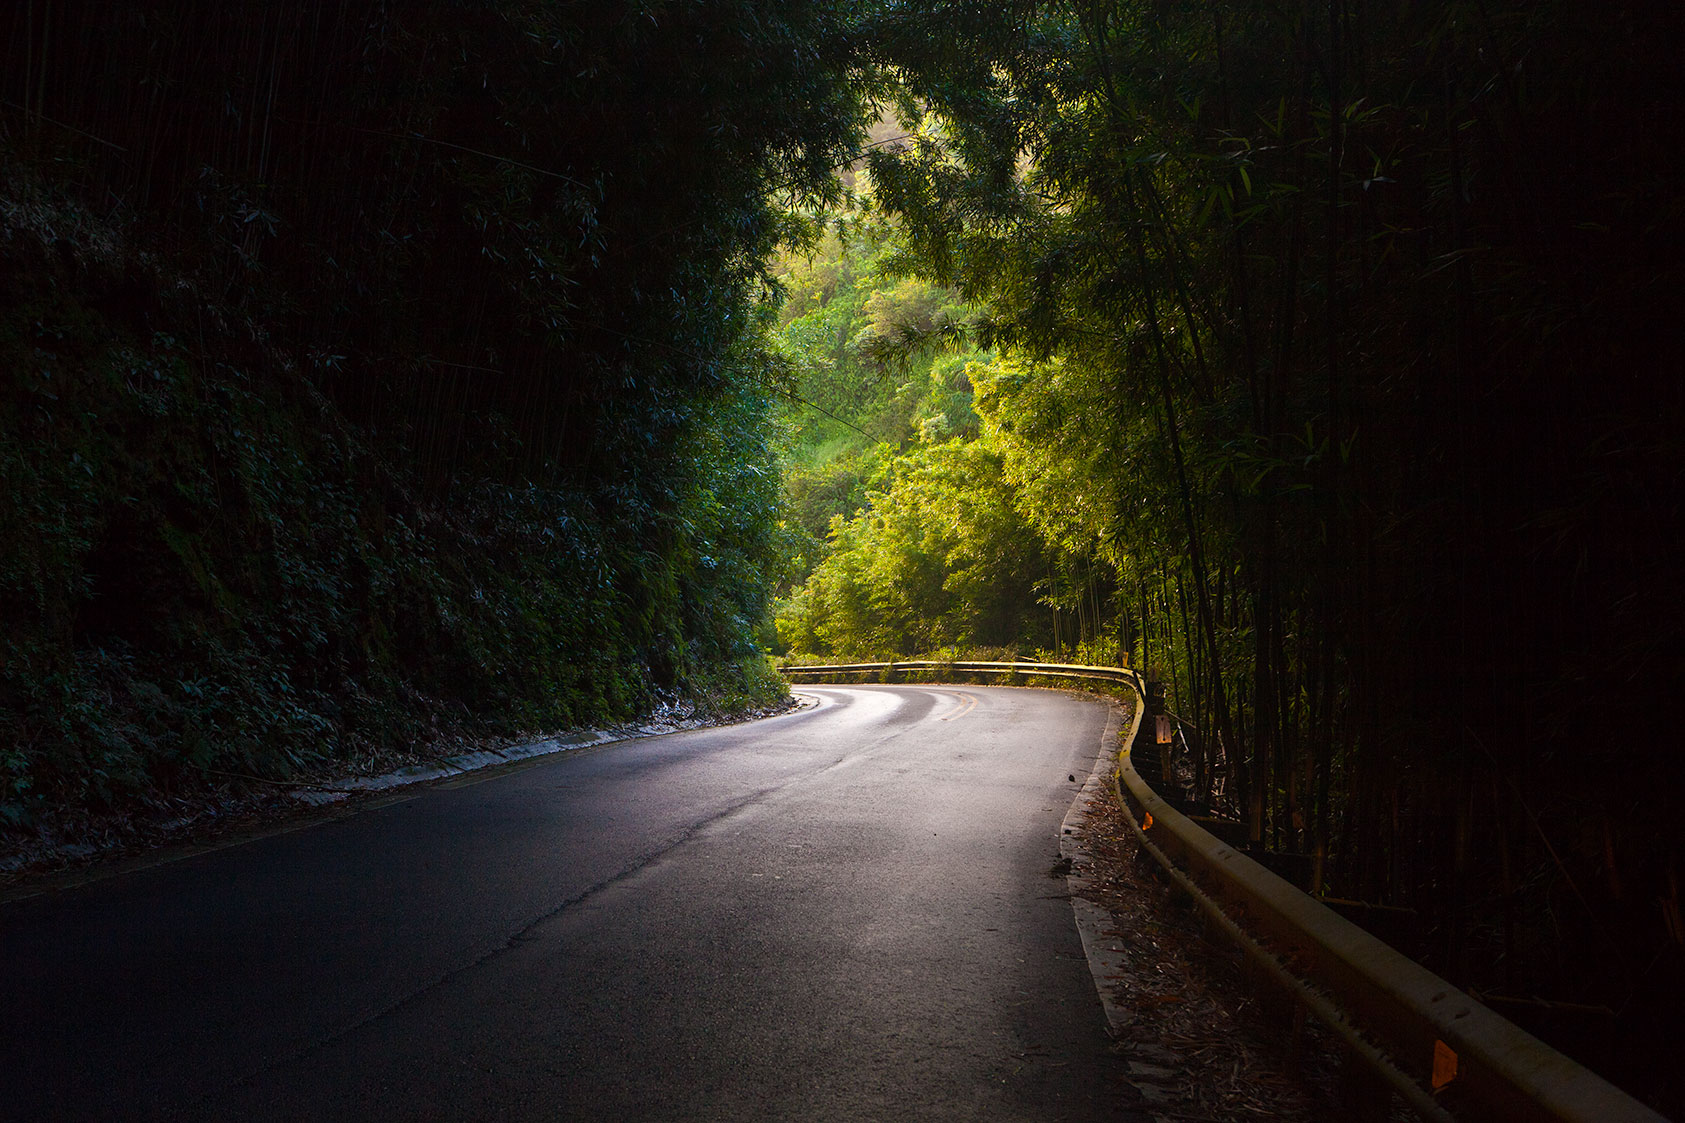 Road out of Hana